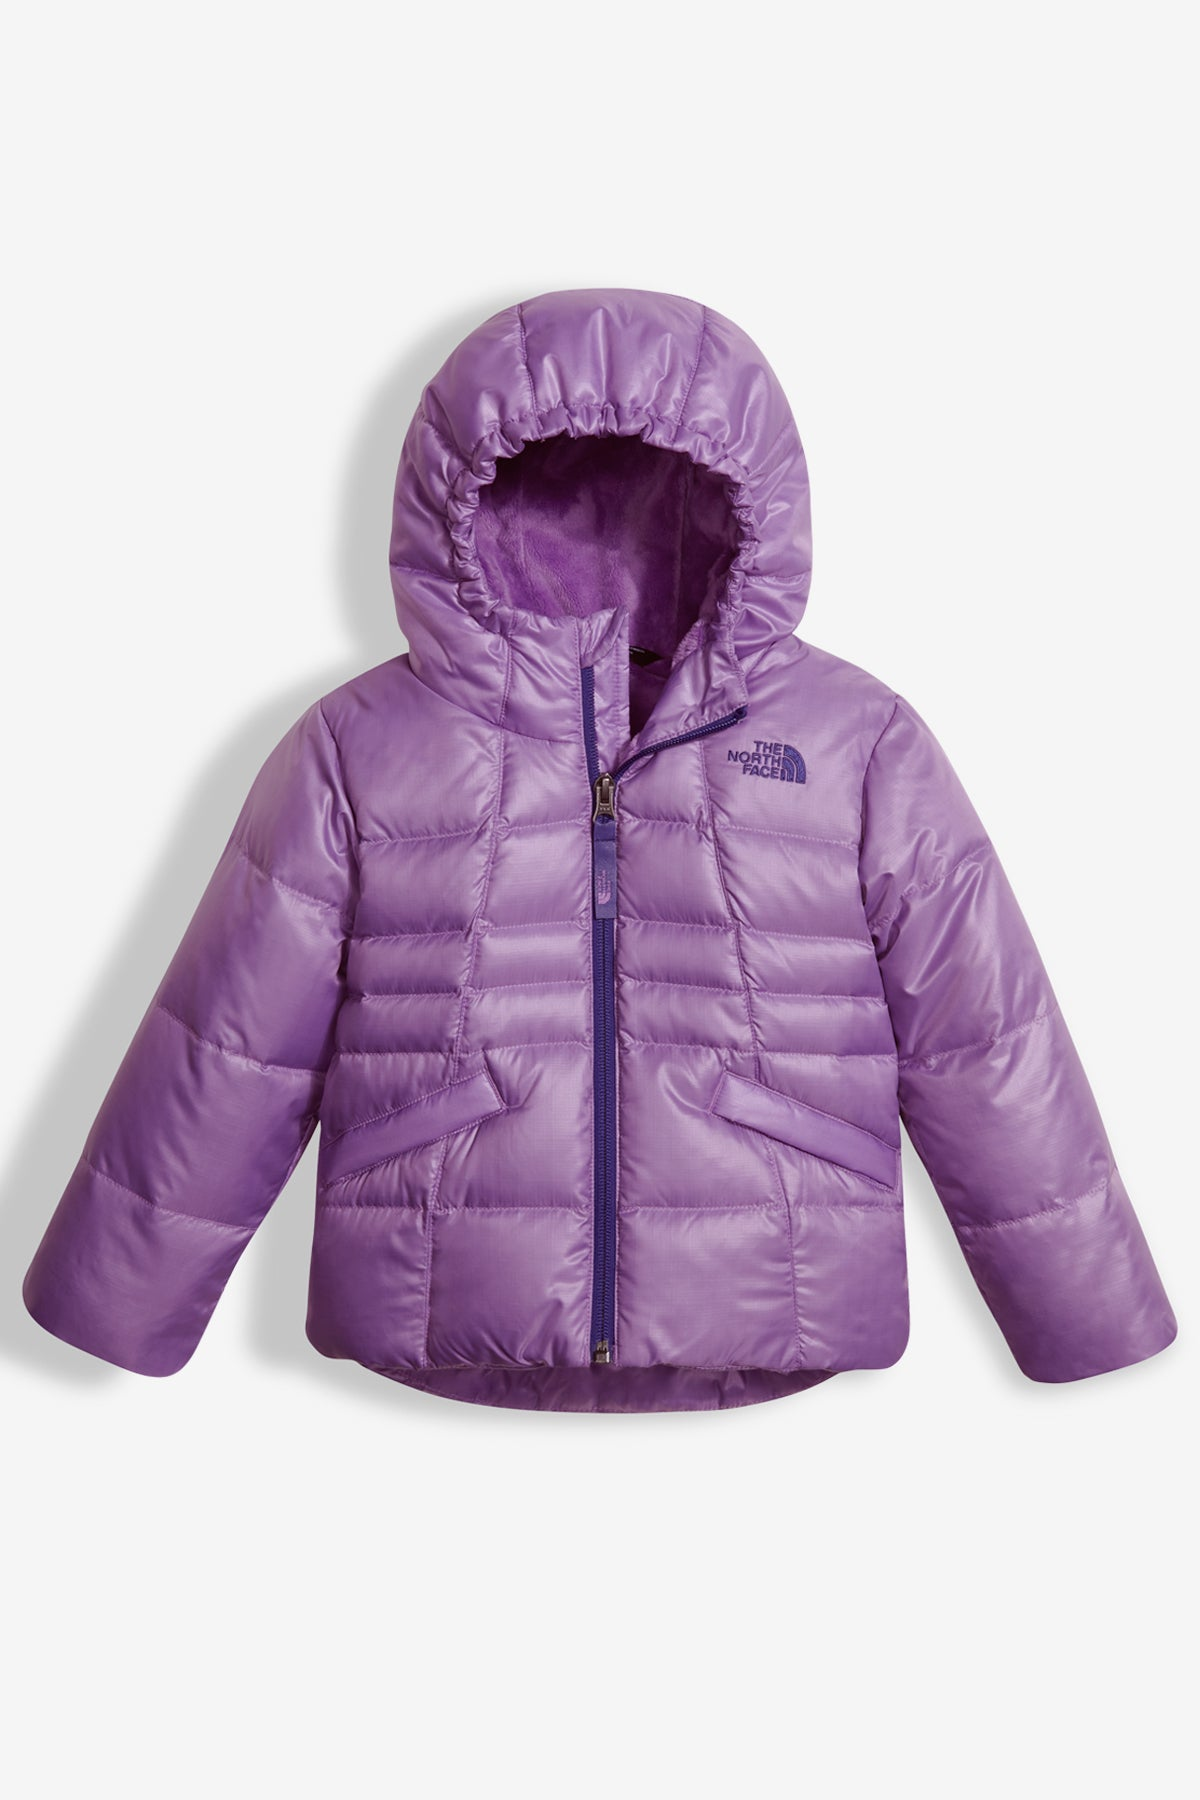 ad6a06bca2 +Menu. Home  Girls · Boys · Baby Girls · Baby Boys · Shoes · The North Face  Little Girls Moondoggy Jacket